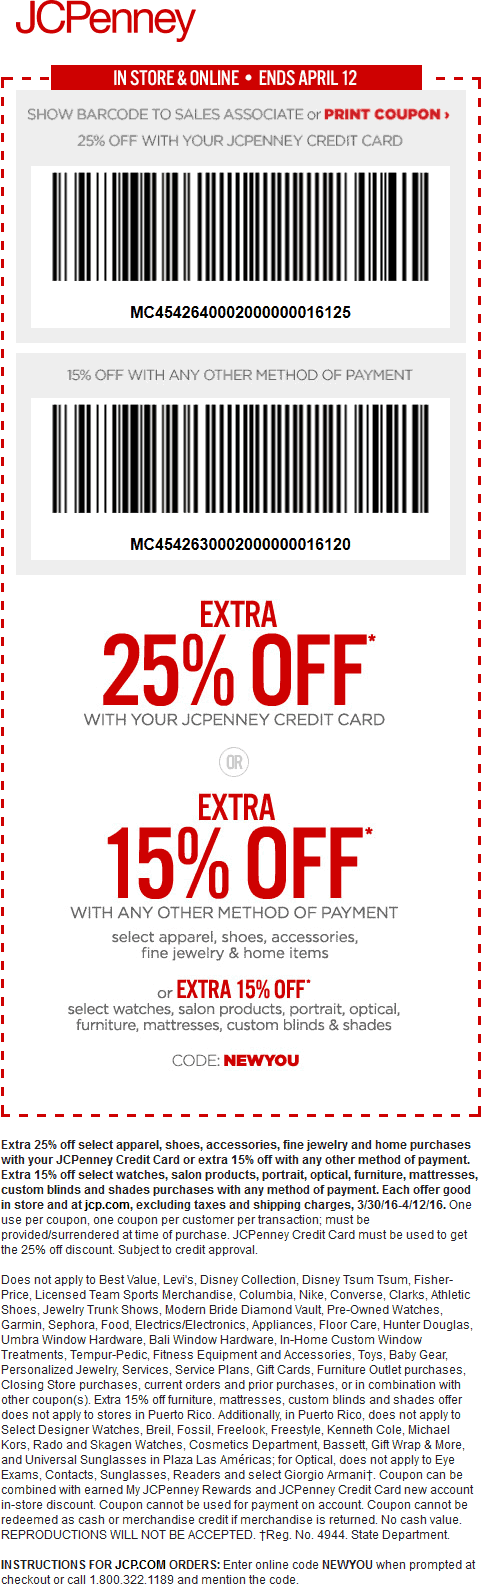 JCPenney Coupon March 2017 Extra 15% off at JCPenney, or online via promo code NEWYOU